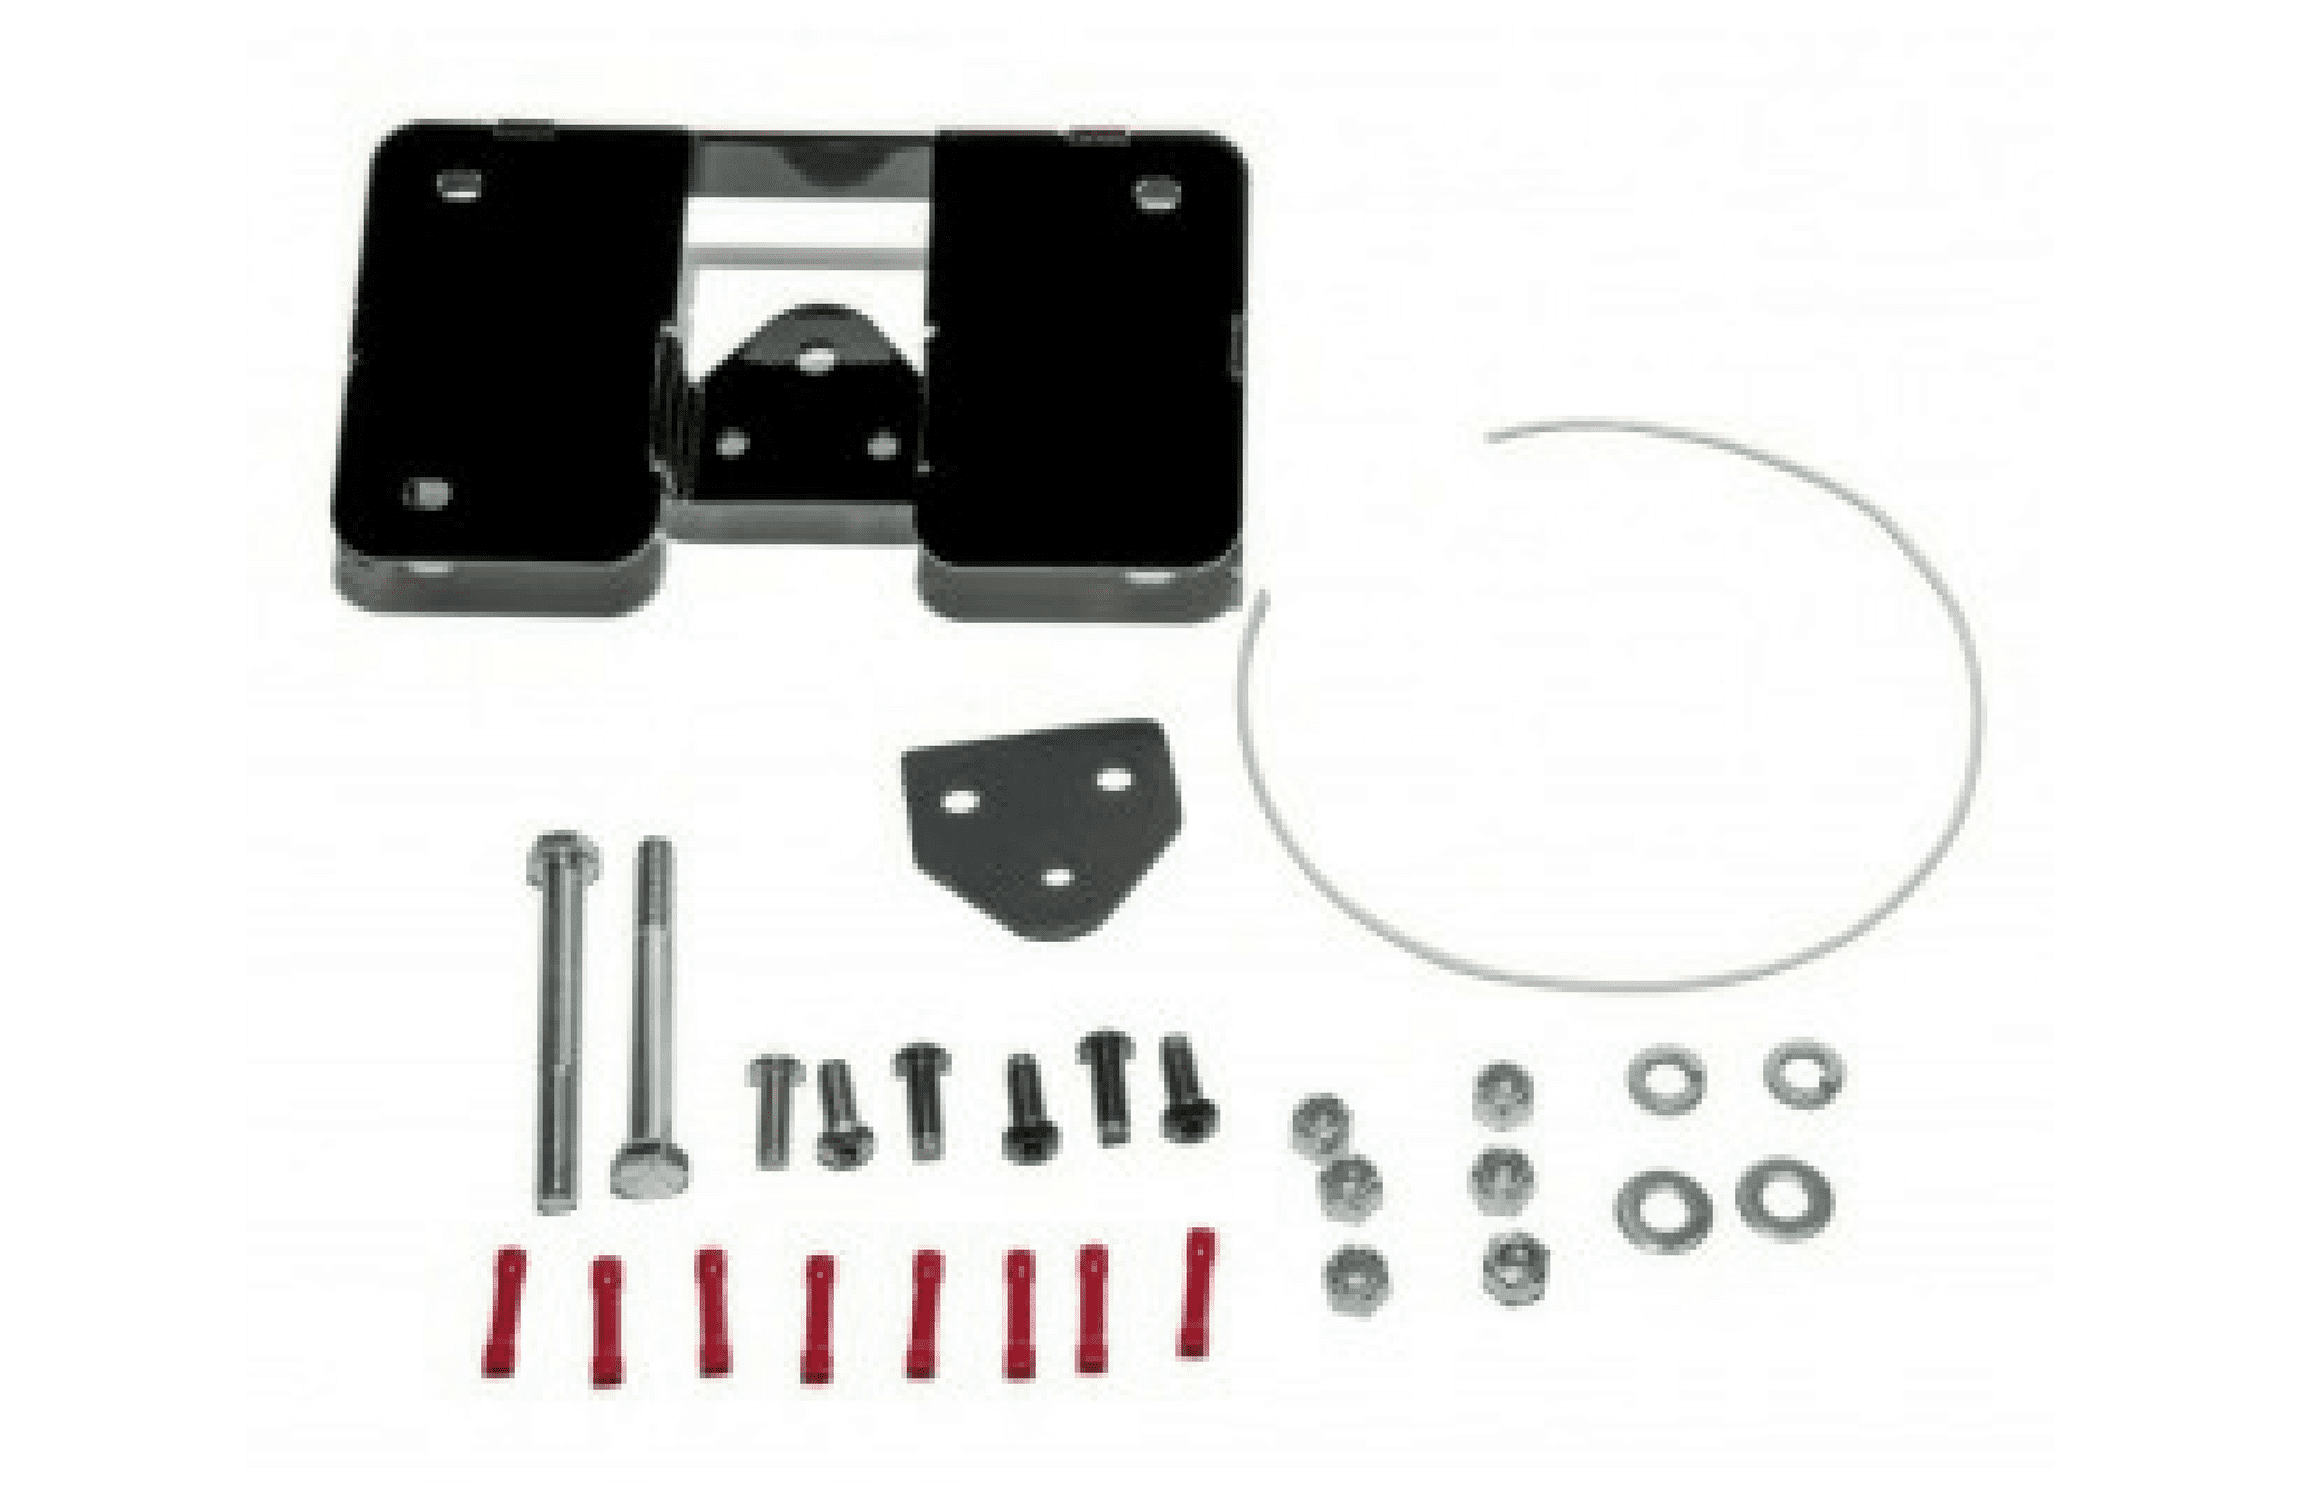 Turn signal relocation kit for 2018 and later Low Rider, Low Rider S